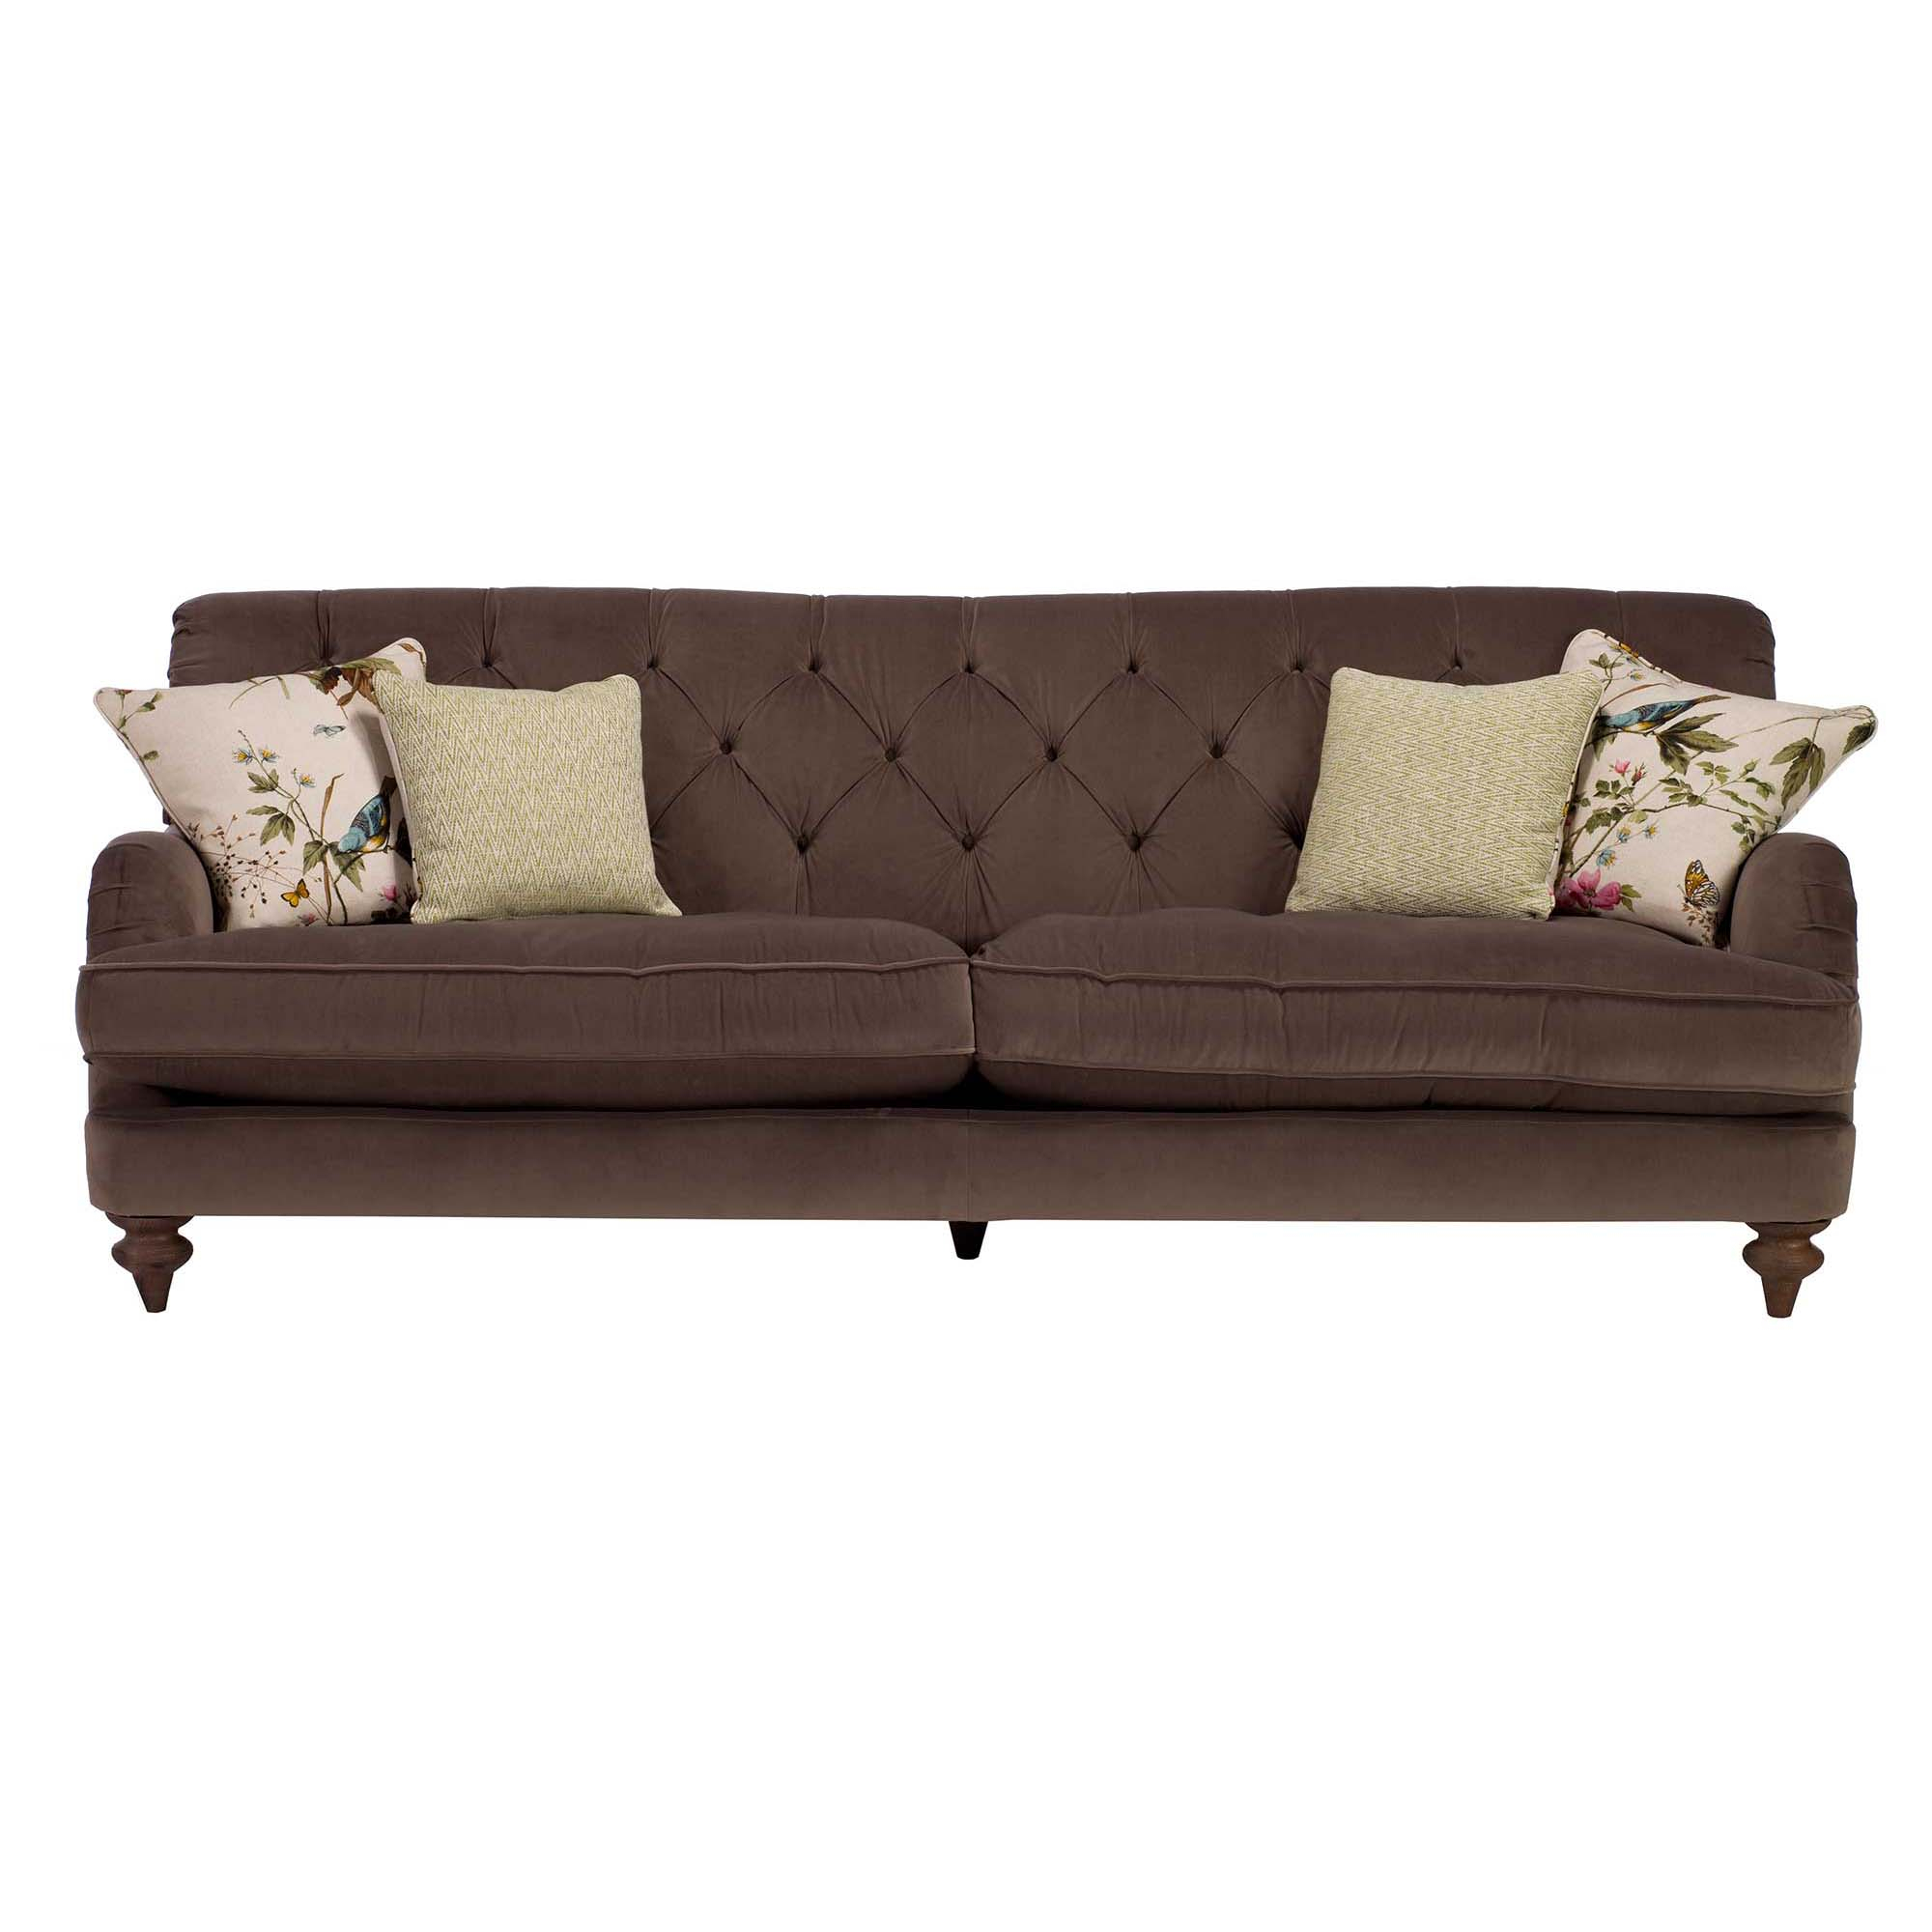 Windermere Extra Large Sofa | Sofas | Living Room Intended For Mercer Foam Oversized Sofa Chairs (View 16 of 25)